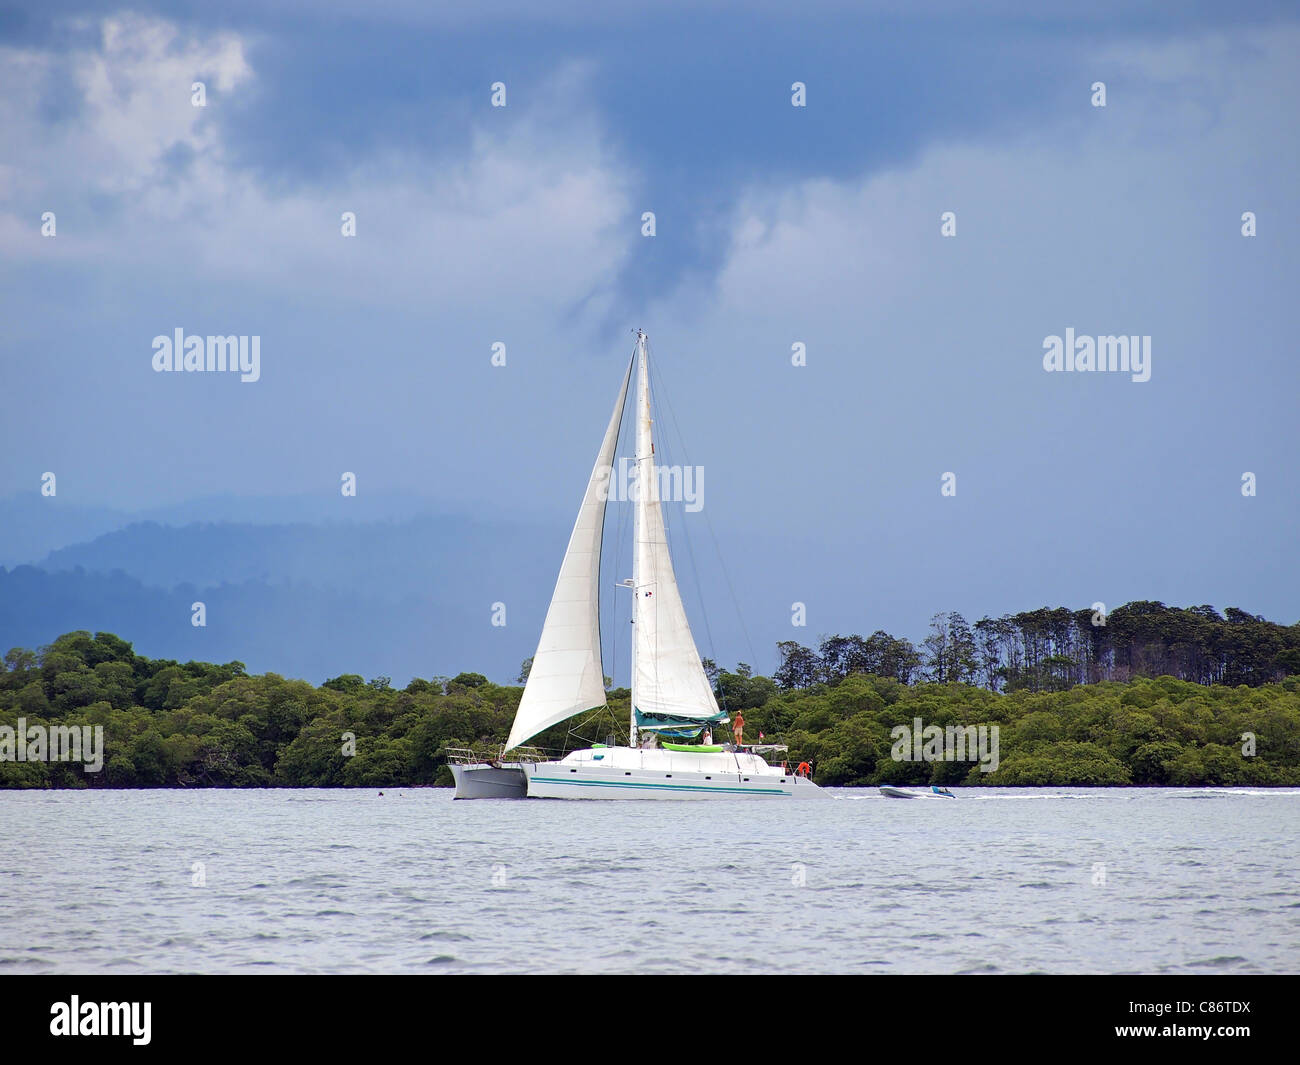 Catamaran and stormy sky with mangrove in background - Stock Image